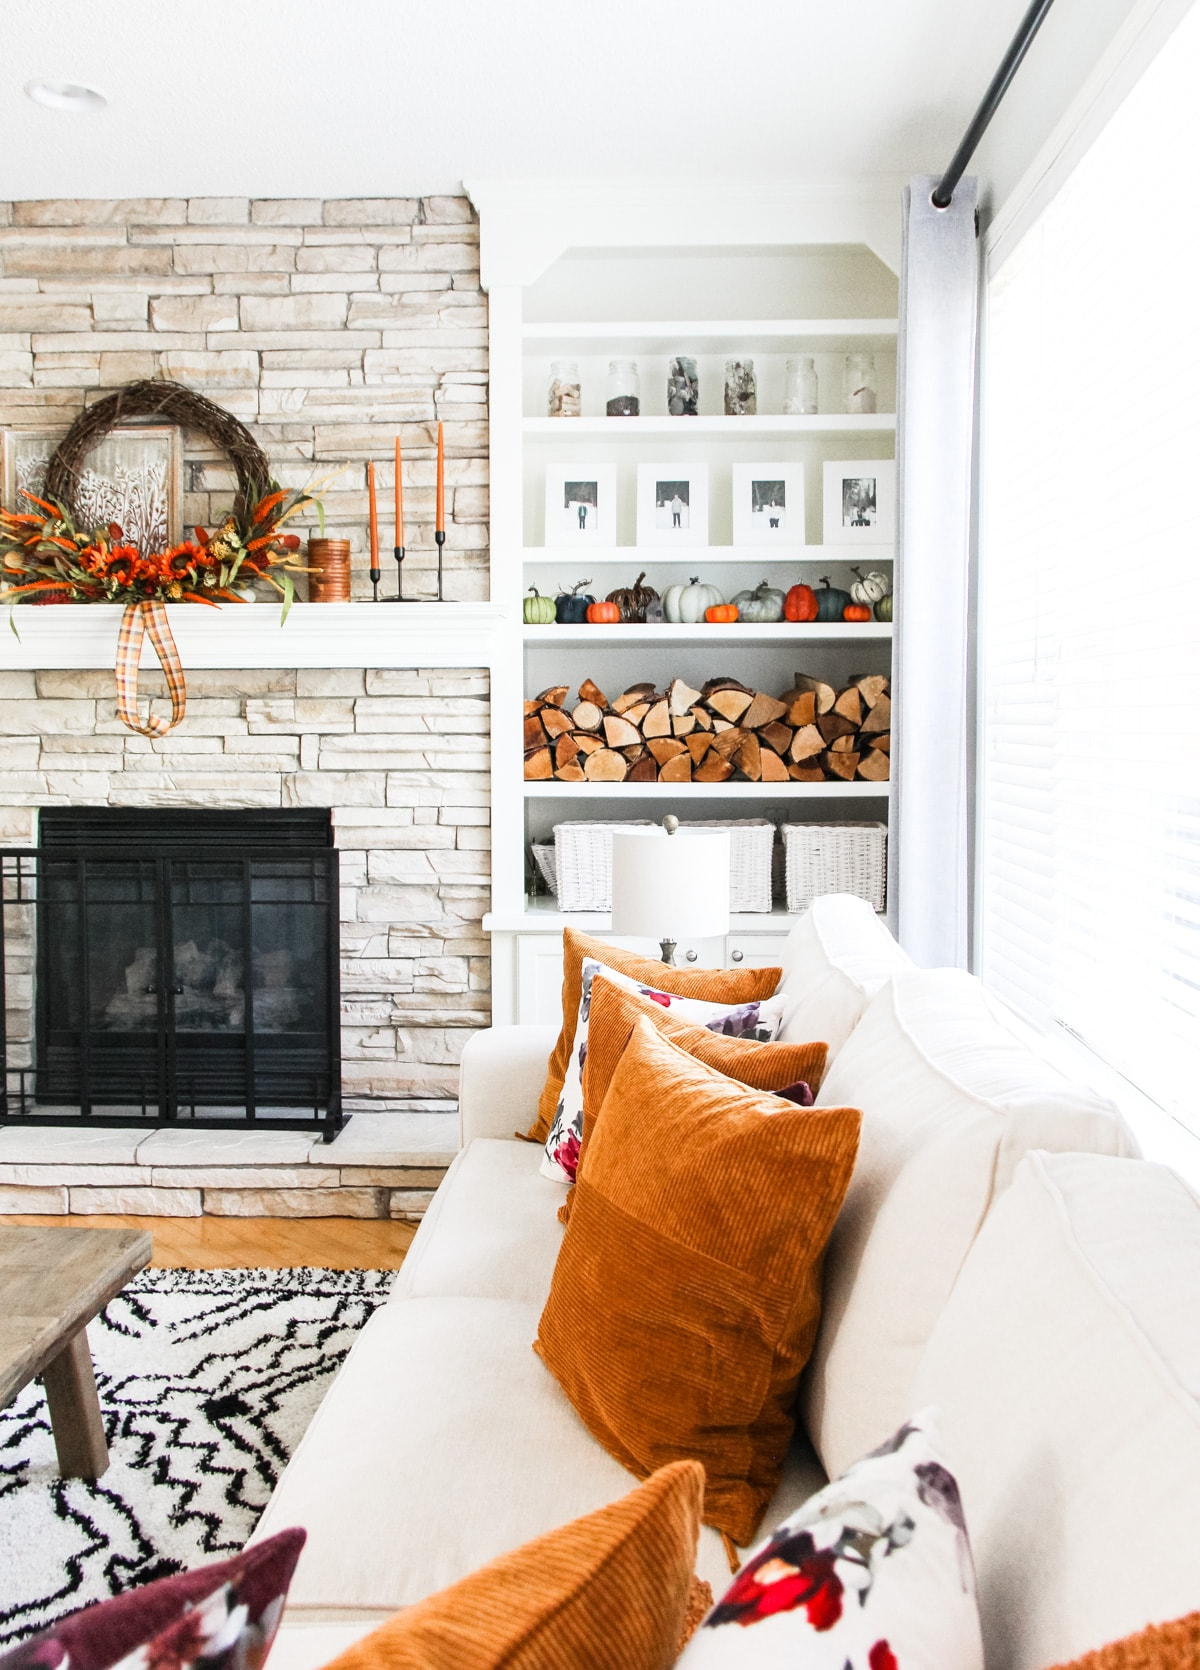 A Simple Fall Mantel on a stone fireplace that is decorated with a large grapevine wreath, candles, stacked wood and pumpkins